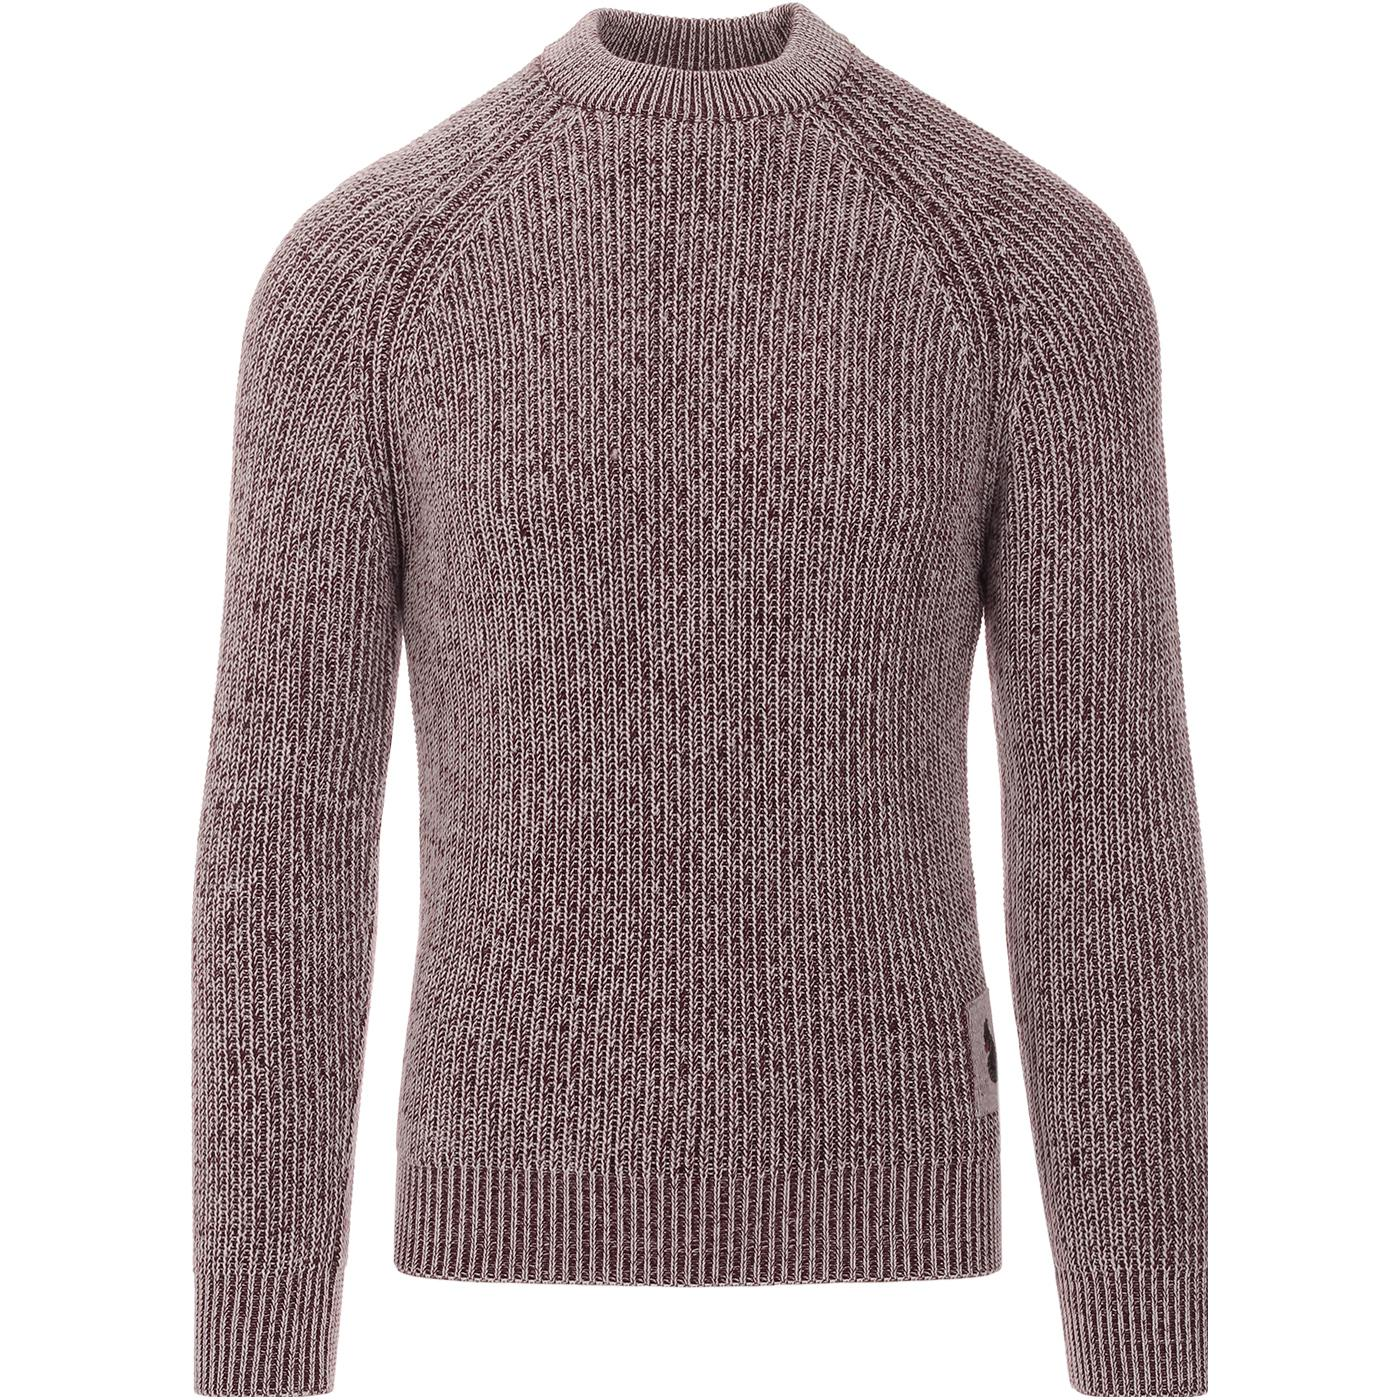 Plated LUKE Retro Ribbed Fisherman's Jumper - WINE